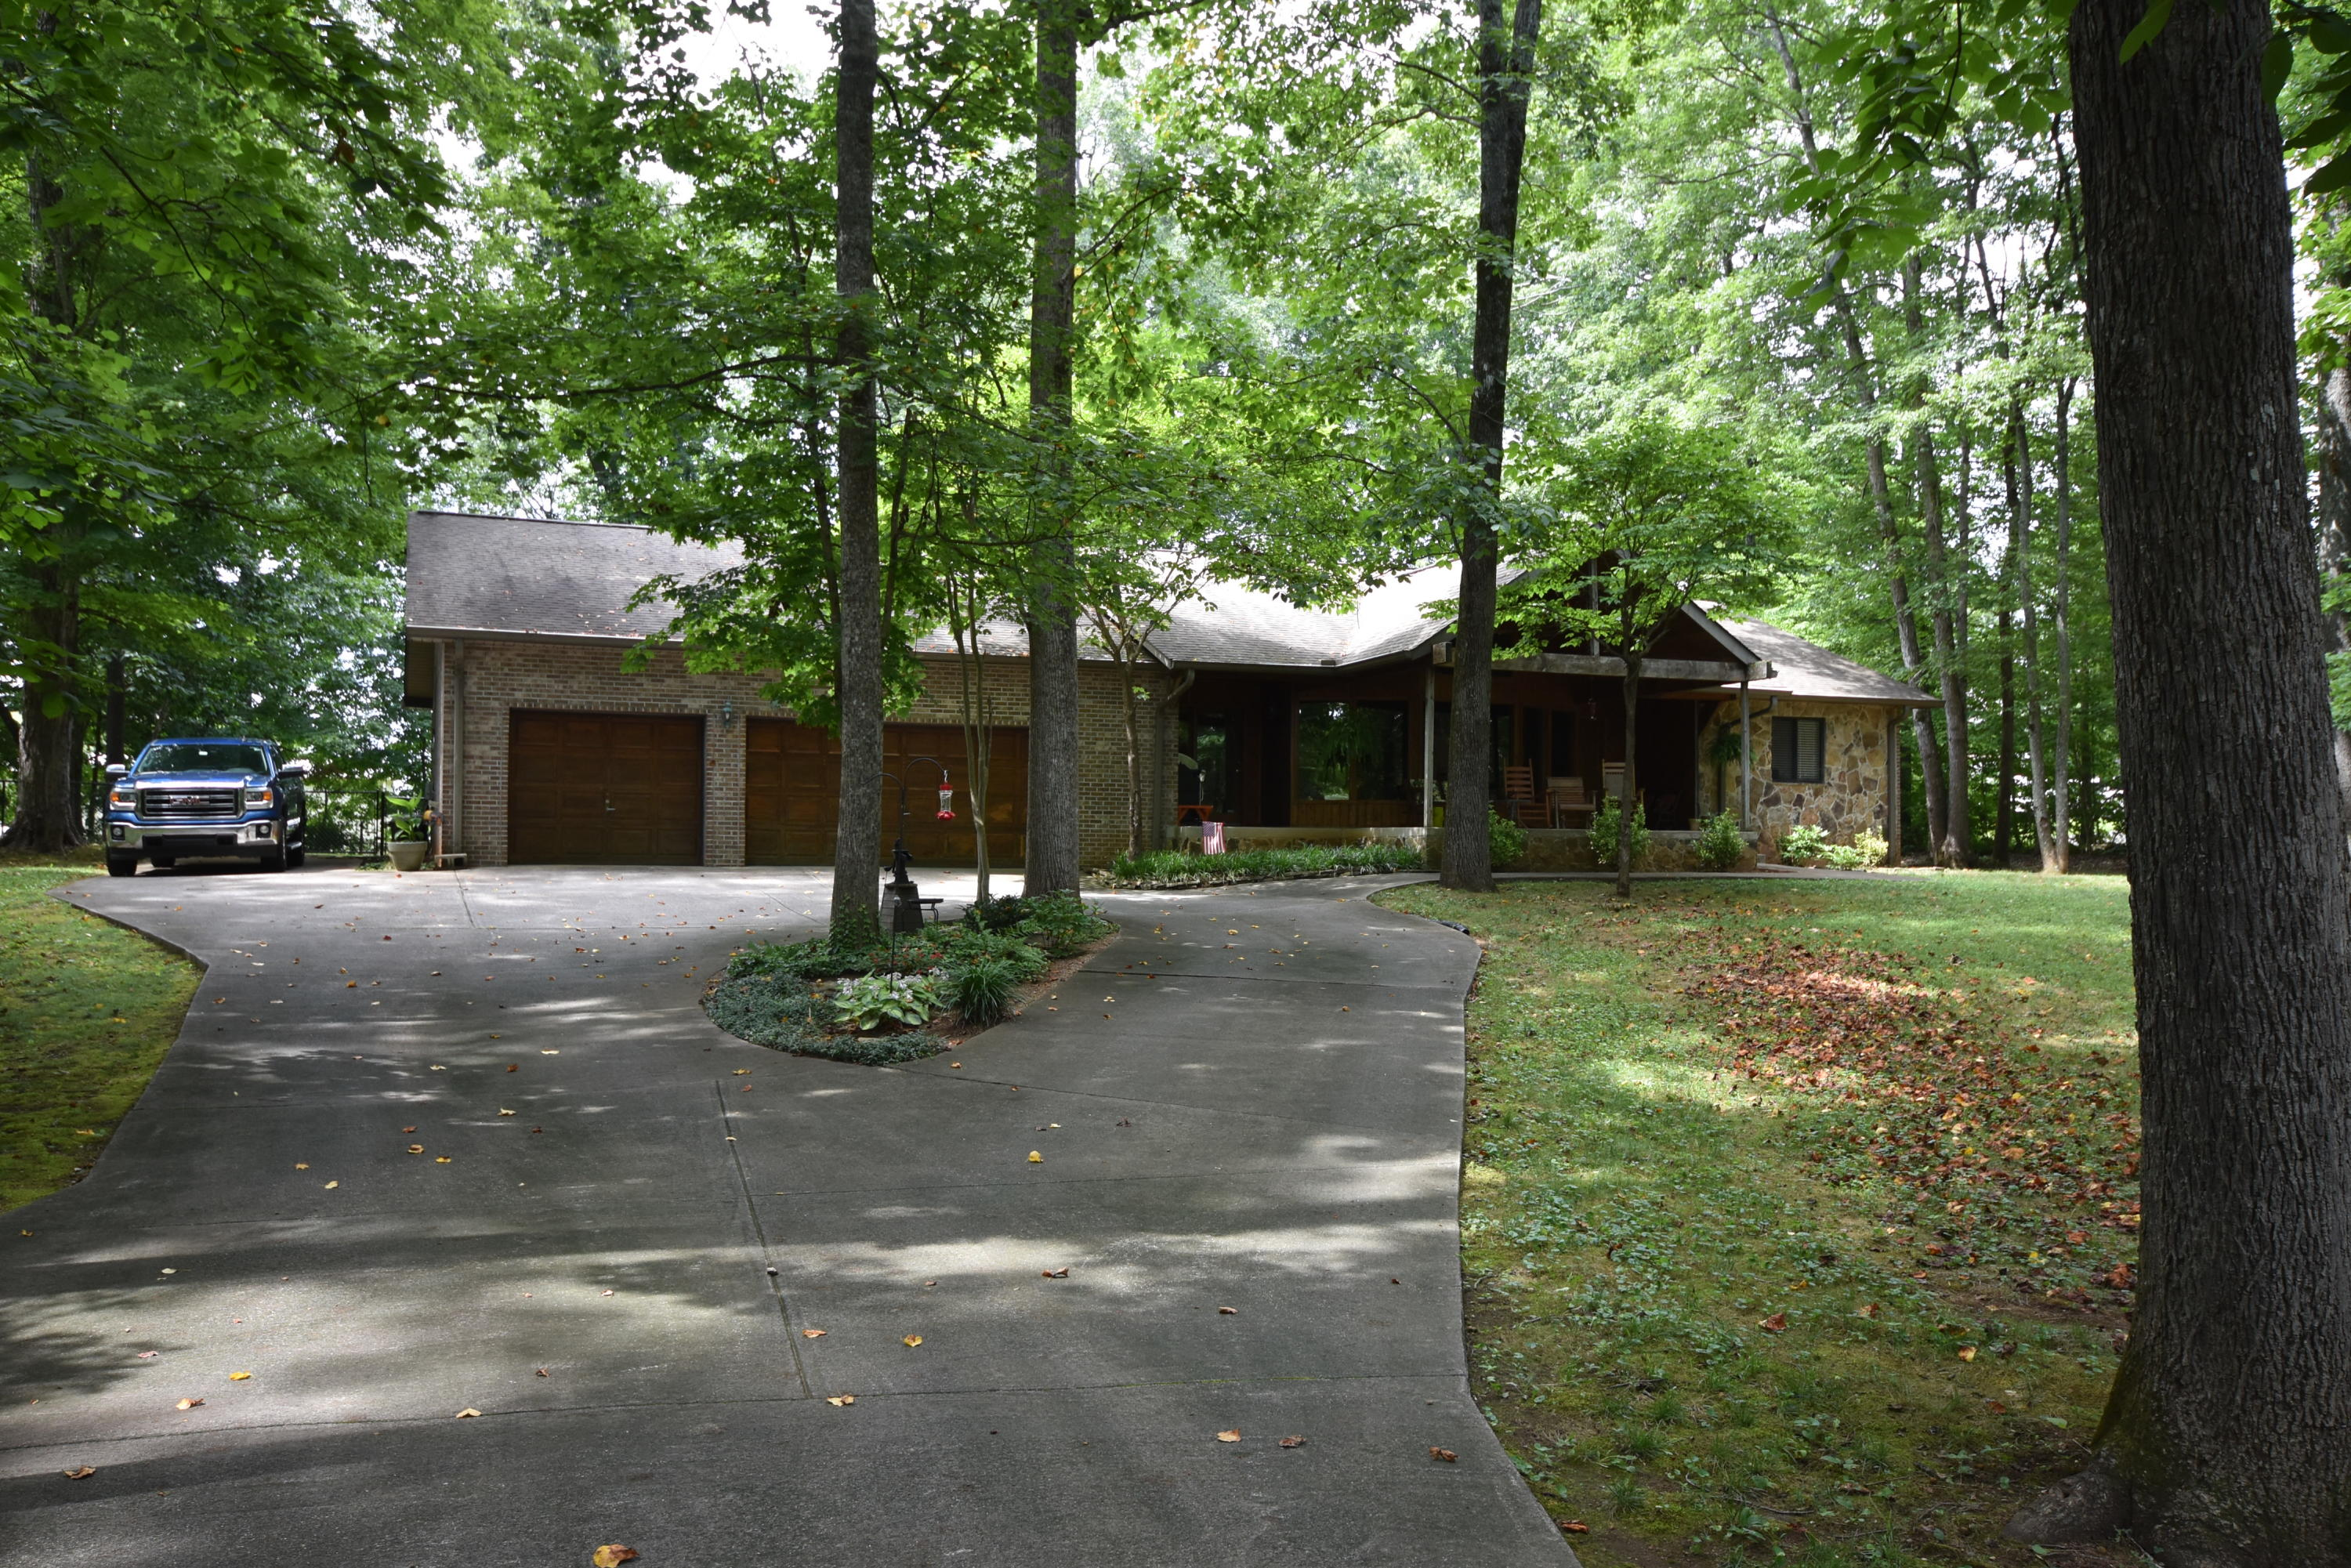 1532 Cunningham Rd W, Seymour, Tennessee, United States 37865, 3 Bedrooms Bedrooms, ,3 BathroomsBathrooms,Single Family,For Sale,Cunningham Rd W,1124838